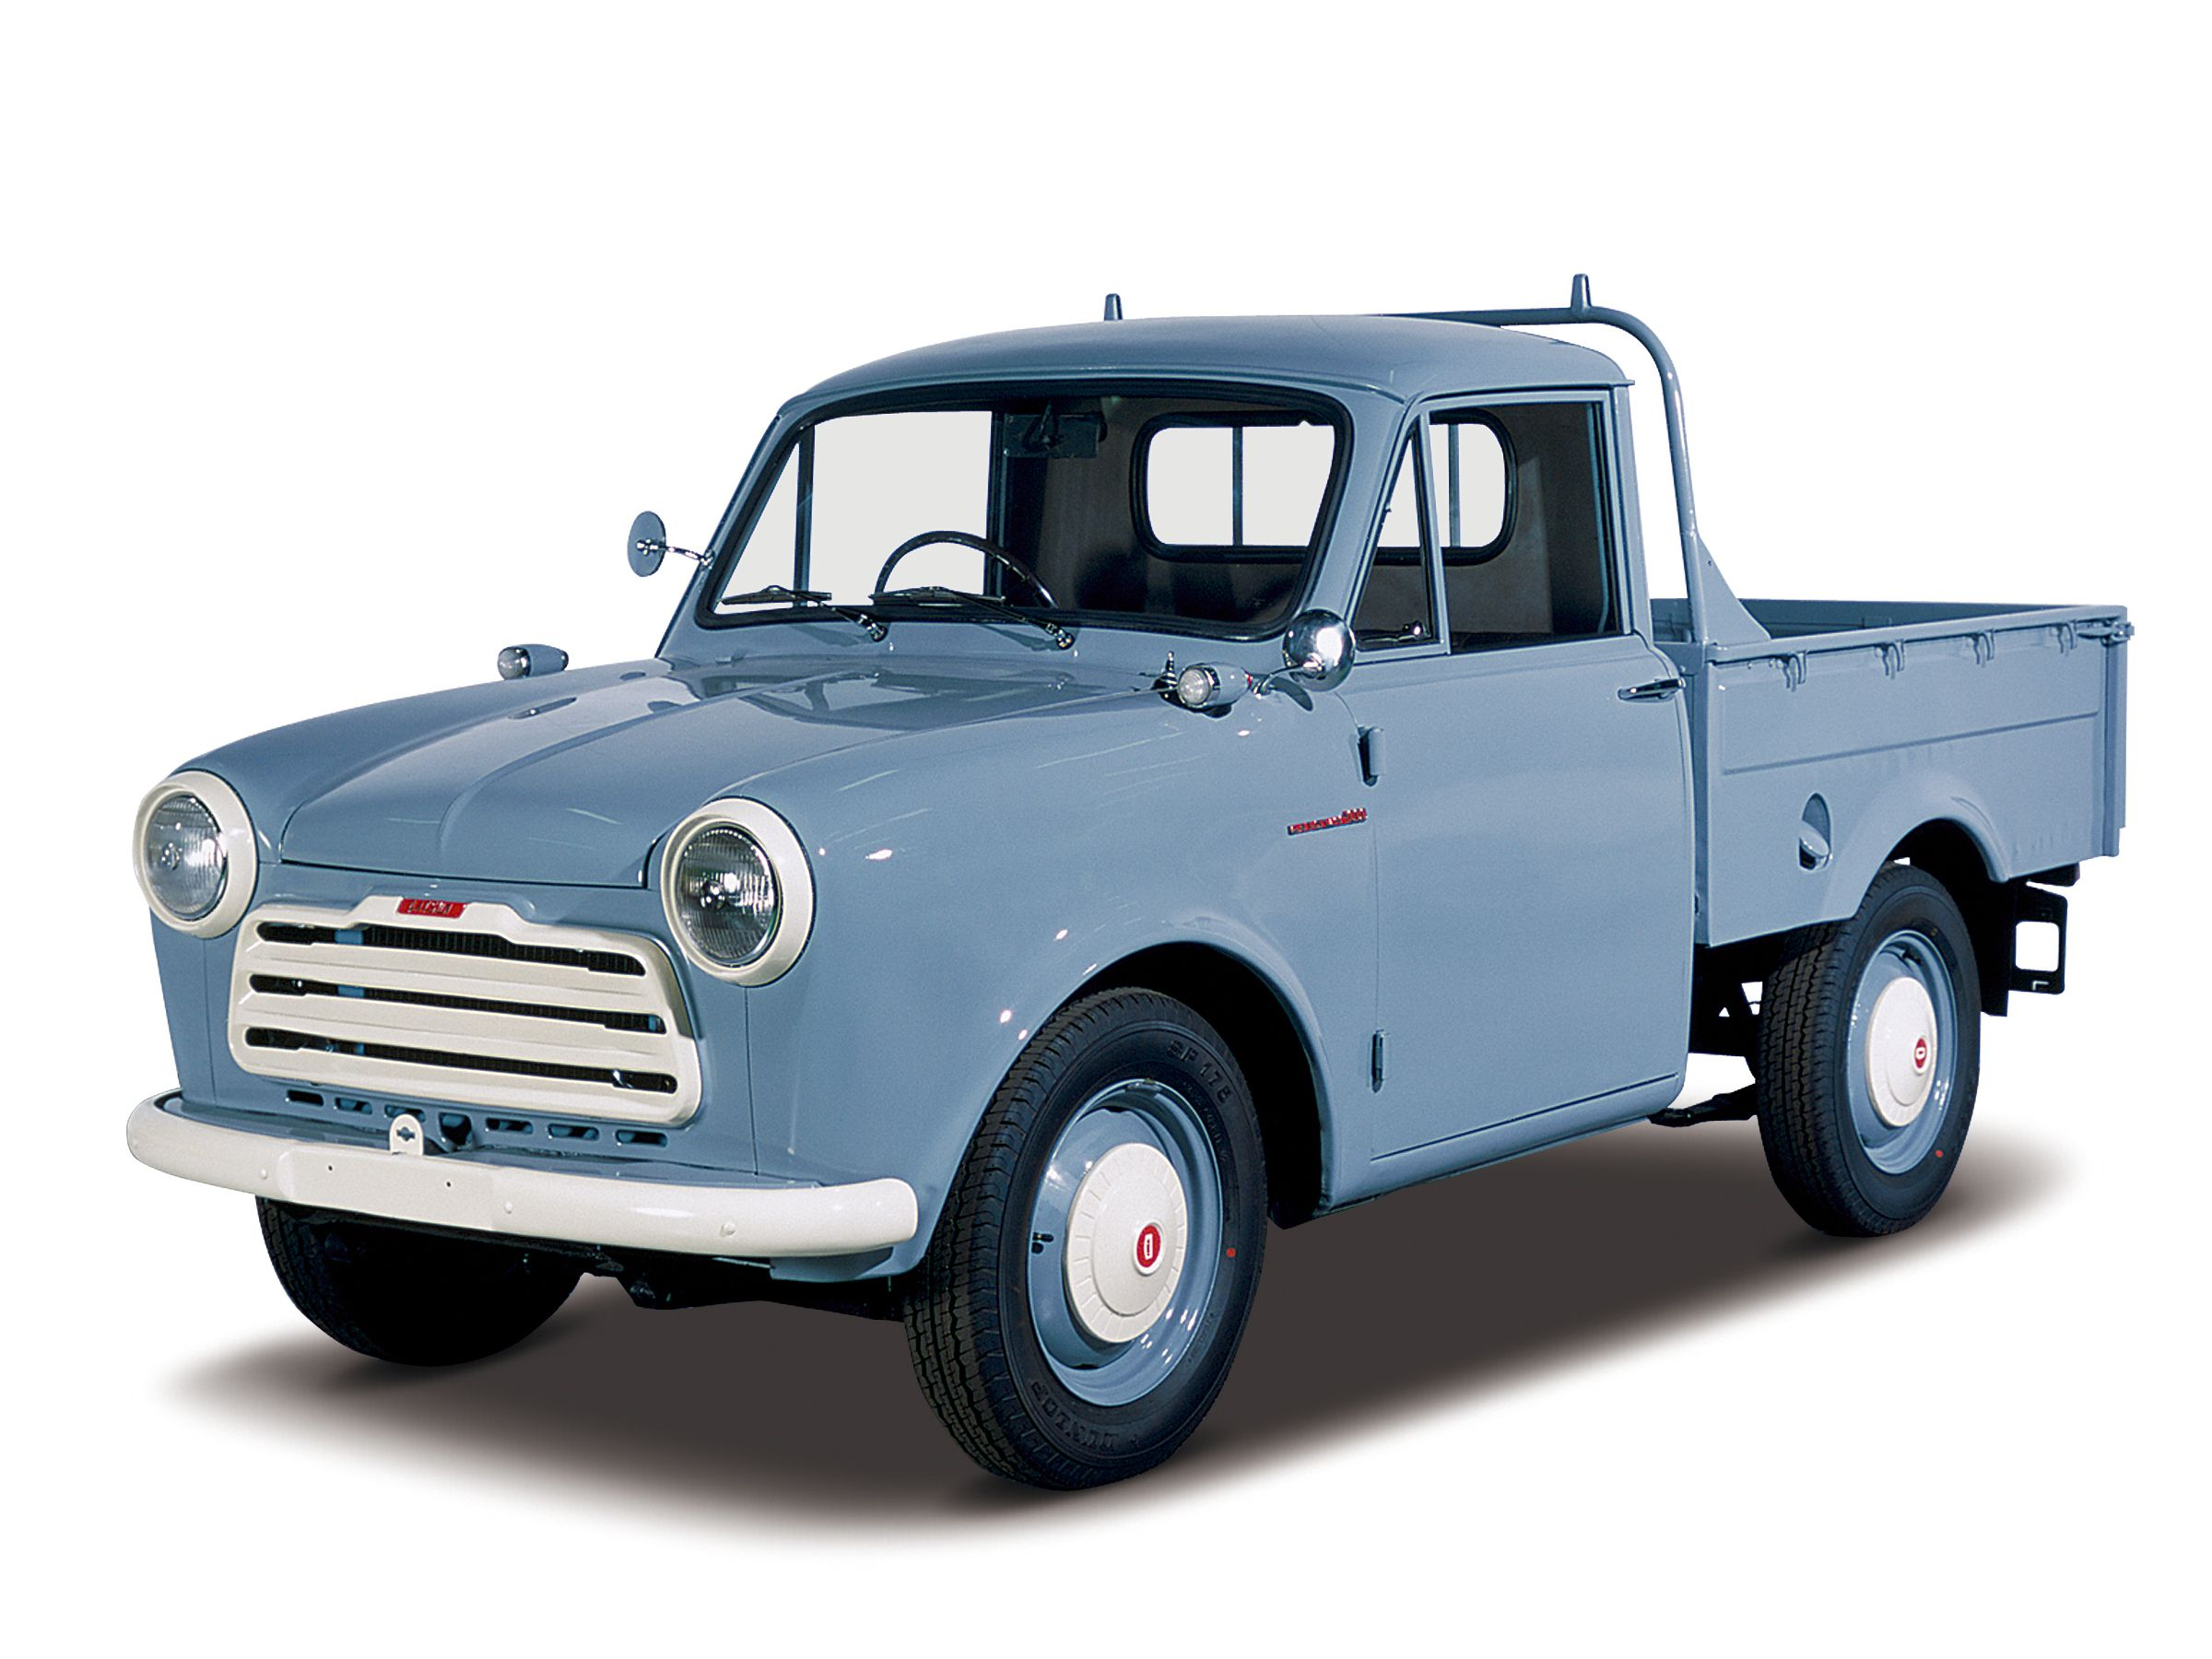 <p>Small pickups are routine sights on American highways. But in the early 1950s, the breed didn't exist. Datsun brought over the very first one back in 1959. The Datsun 1000 pickup was a tyke that used a tiny 37 hp 1000 cc four-cylinder engine and had a hauling capacity of 500 pounds. Full-size American trucks were for the really big jobs, so there was clearly a place for a smaller, more efficient truck. Datsun beat its rival Toyota to the US with a compact by half a decade, jumpstarting a compact trend that would peak in the late 1970s and 1980s with yearly sales in the hundreds of thousands.</p>